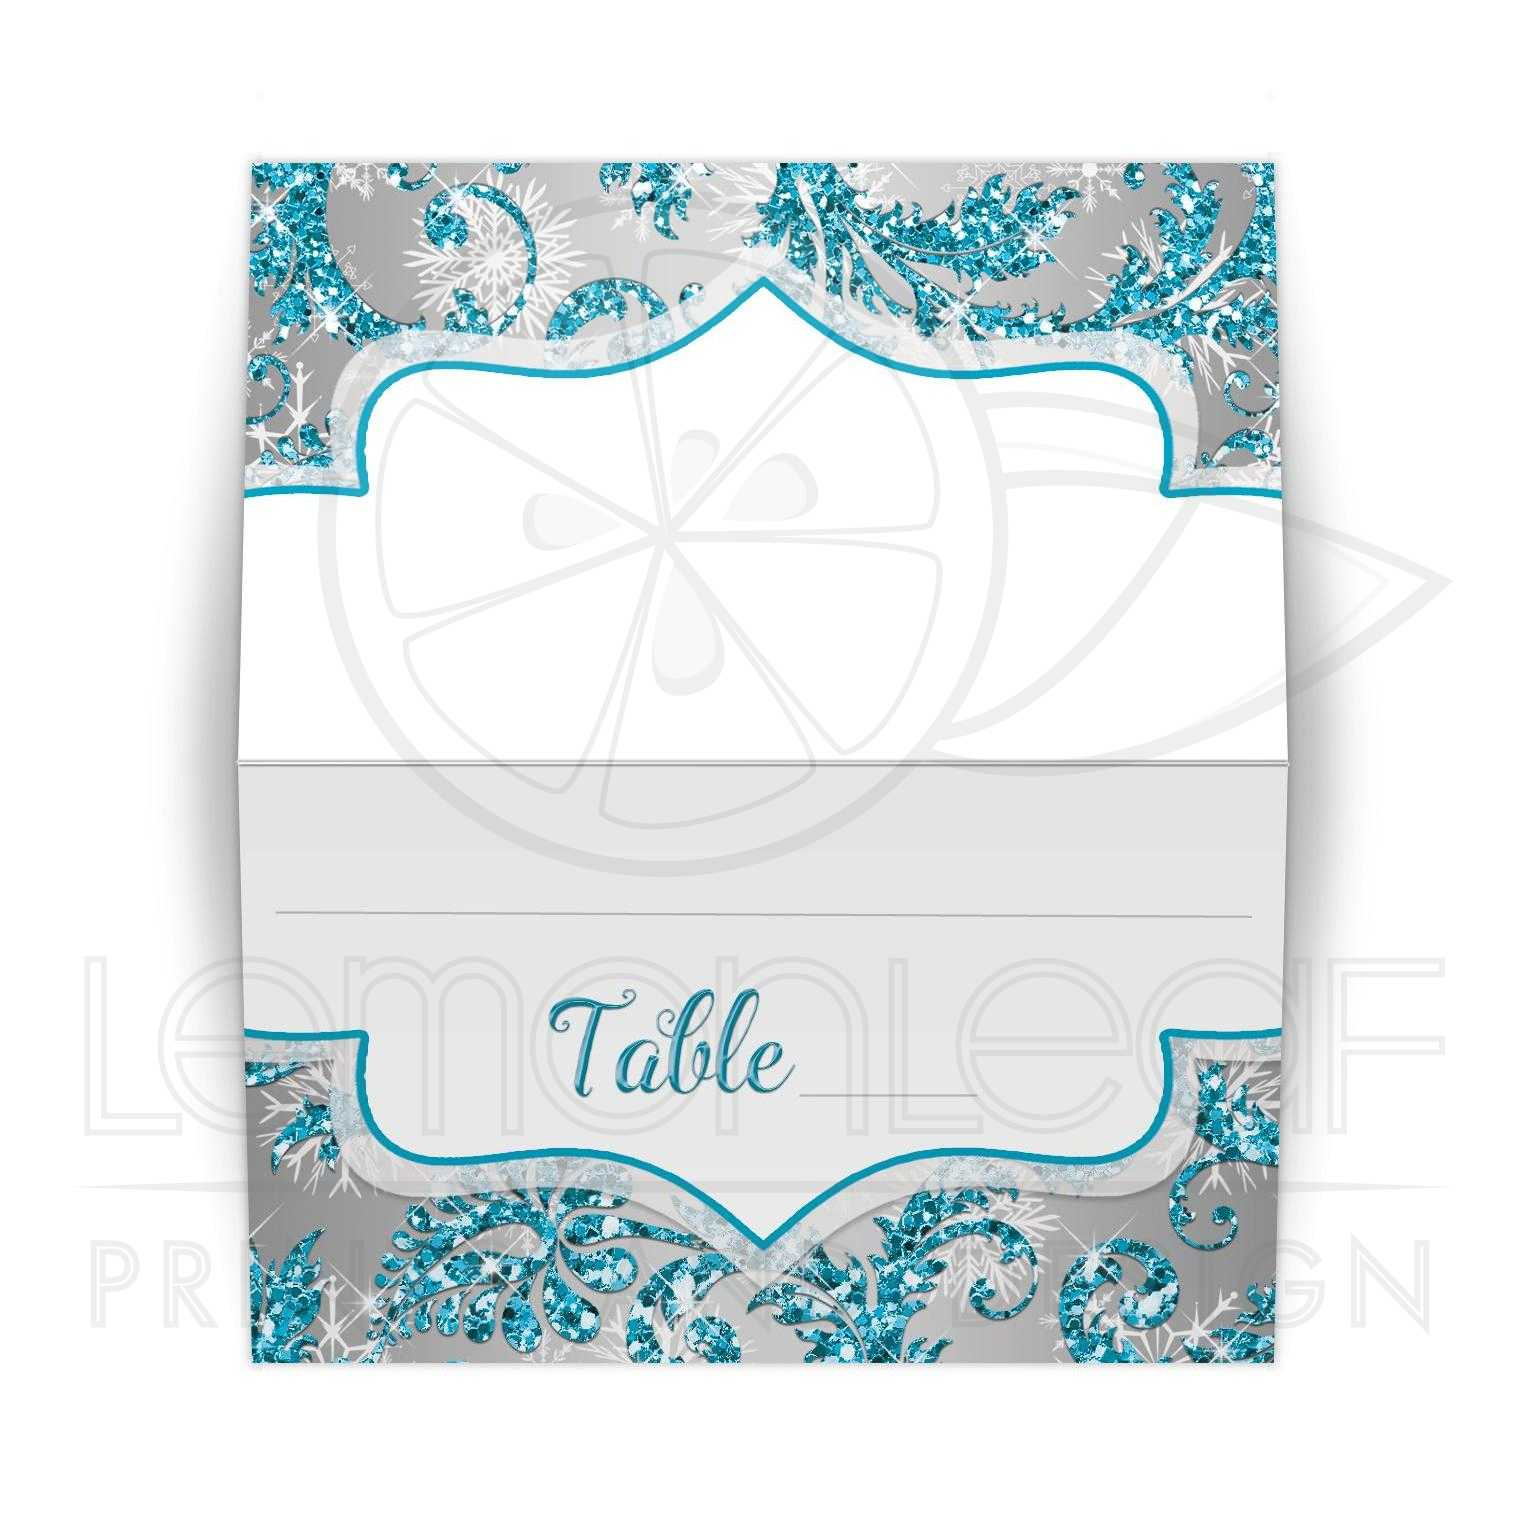 Folded quinceaera place card or escort card winter wonderland great winter wonderland quinceanera birthday party reception place card in turquoise blue silver and white bookmarktalkfo Gallery